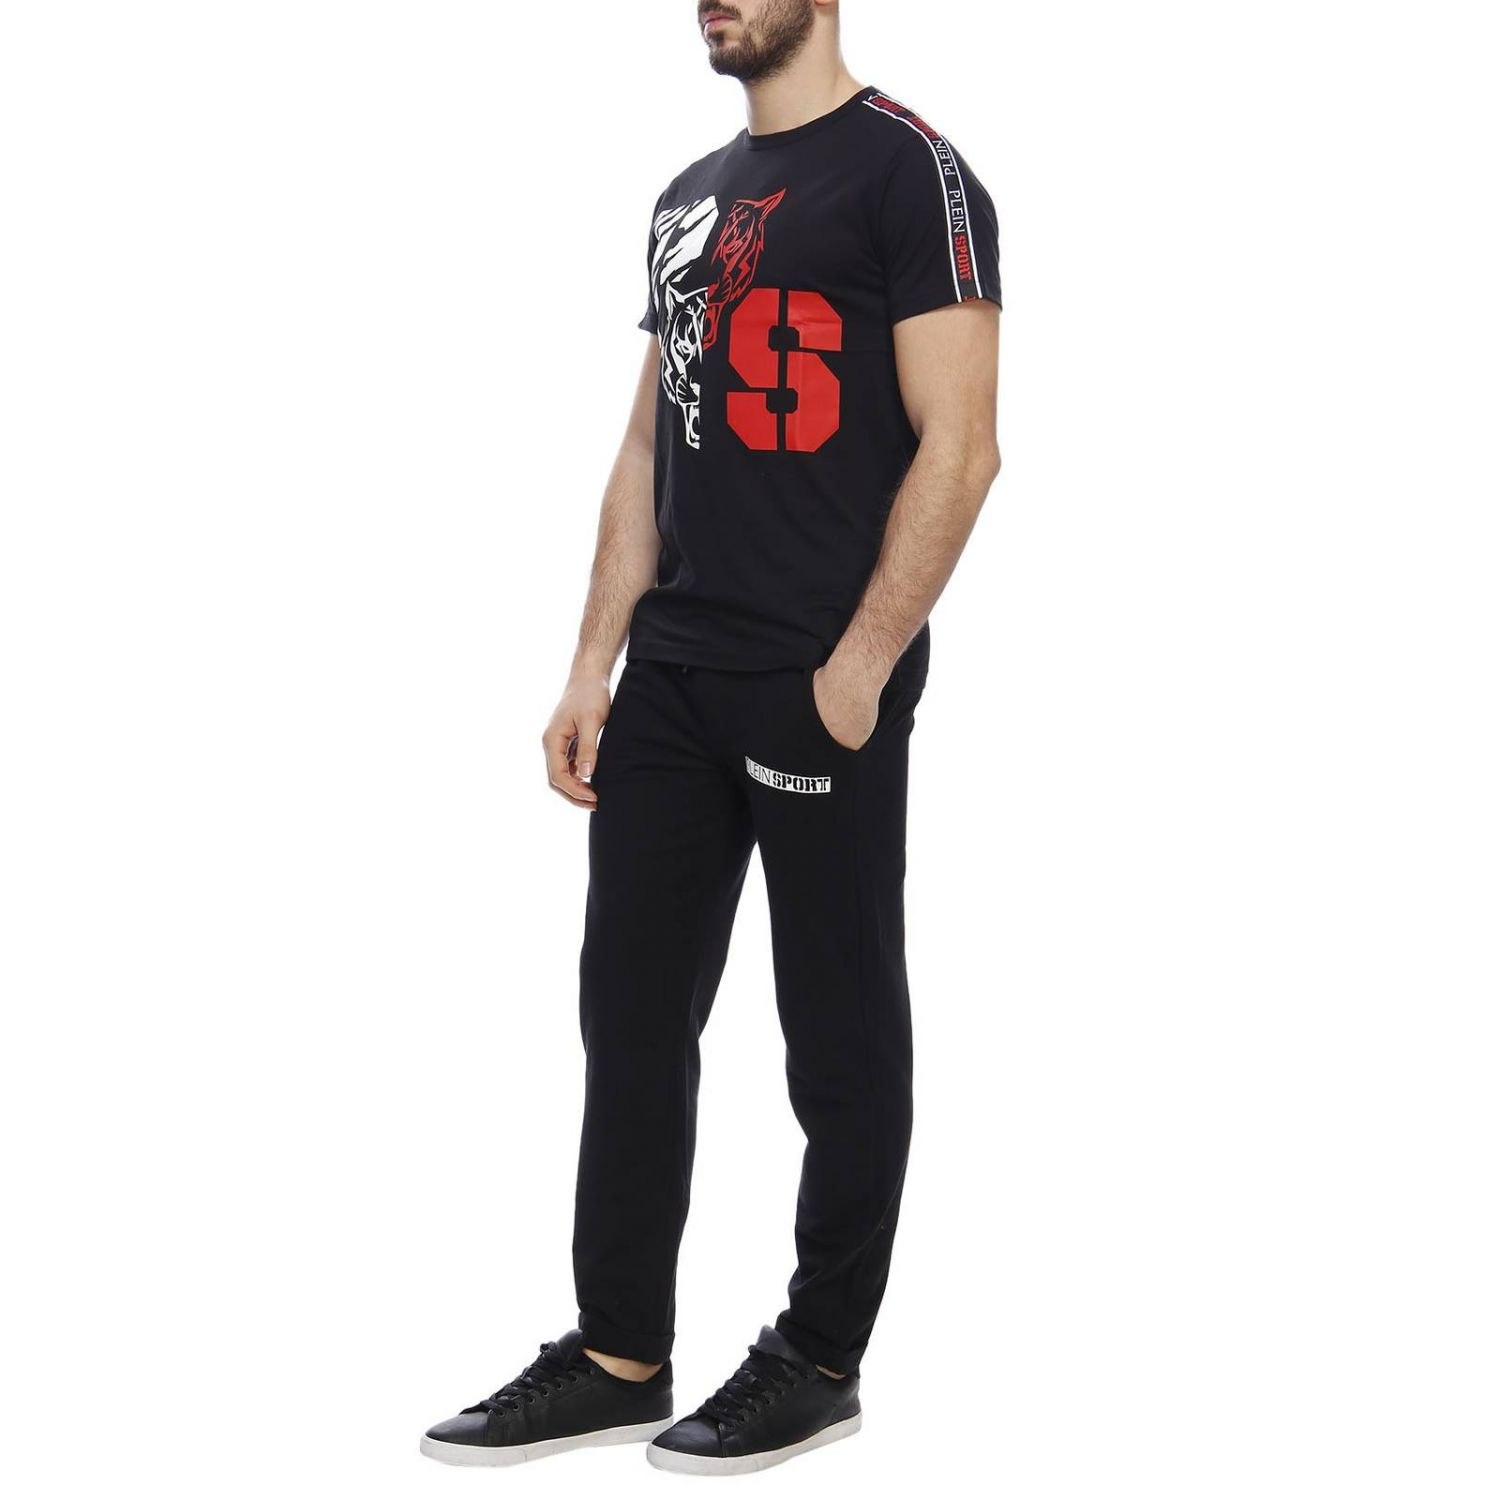 T-shirt men Plein Sport black 4